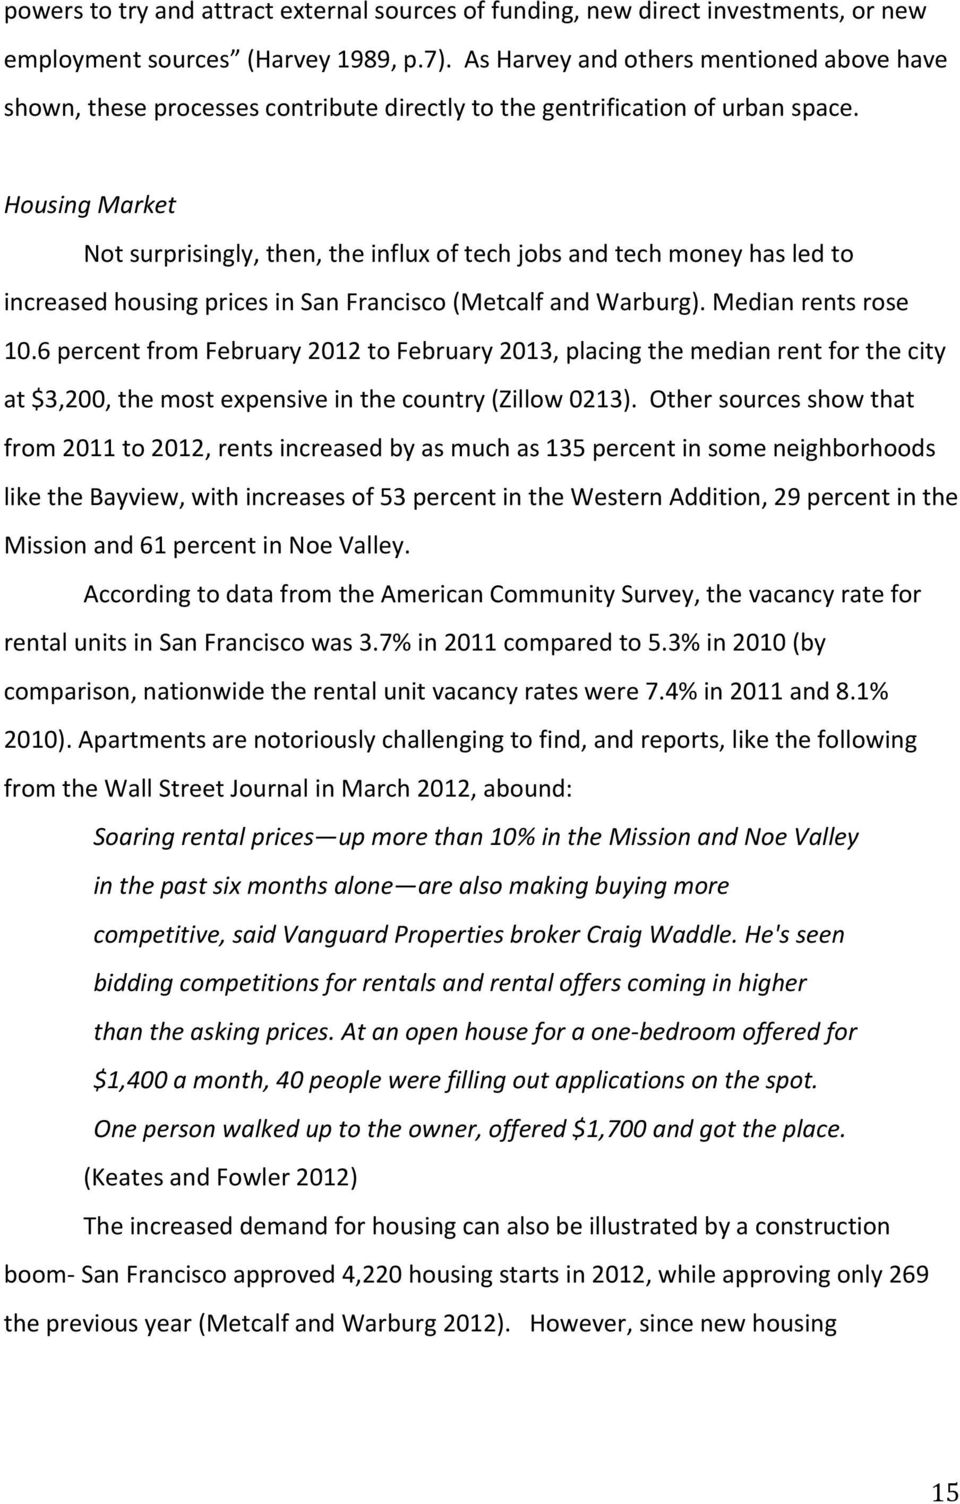 Housing Market Not surprisingly, then, the influx of tech jobs and tech money has led to increased housing prices in San Francisco (Metcalf and Warburg). Median rents rose 10.